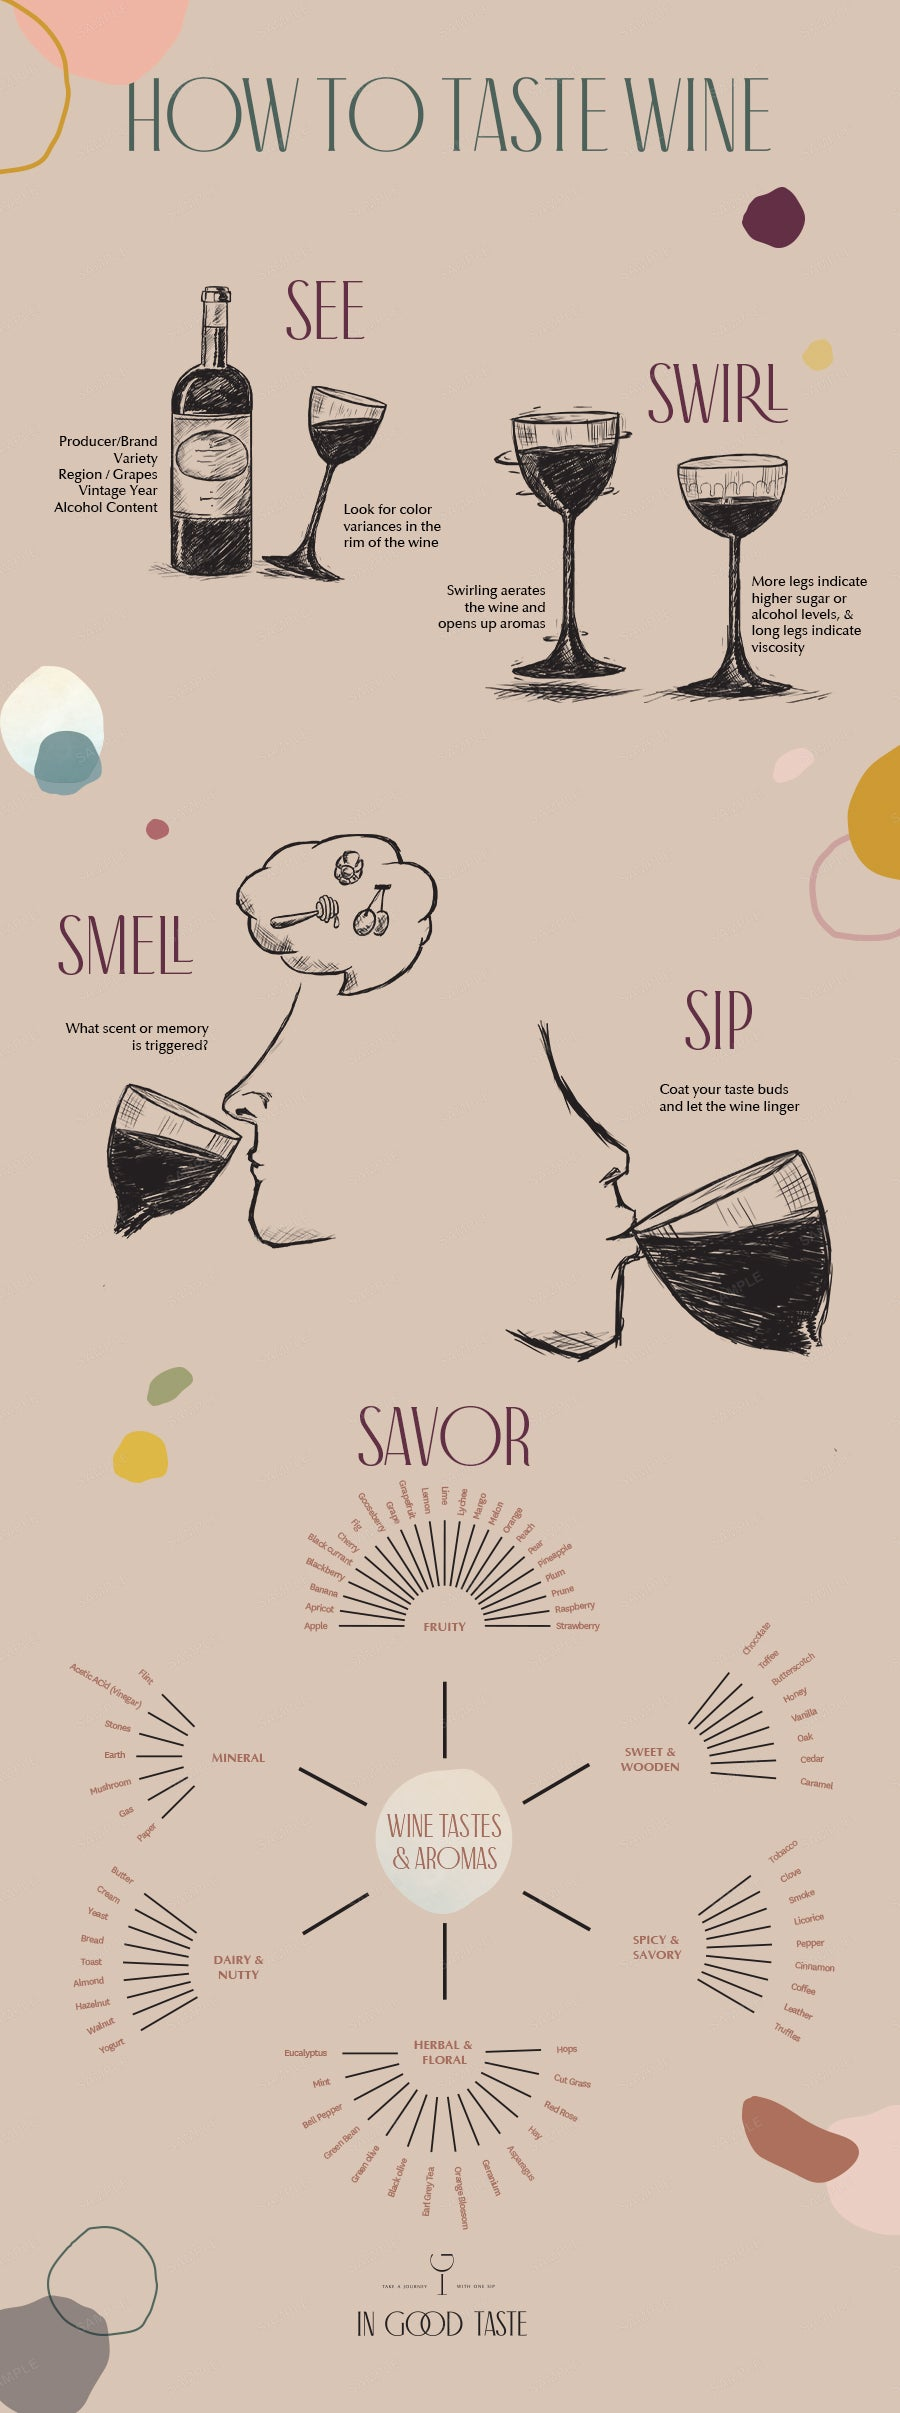 Infographic on the 5 Steps to Properly Taste Wine